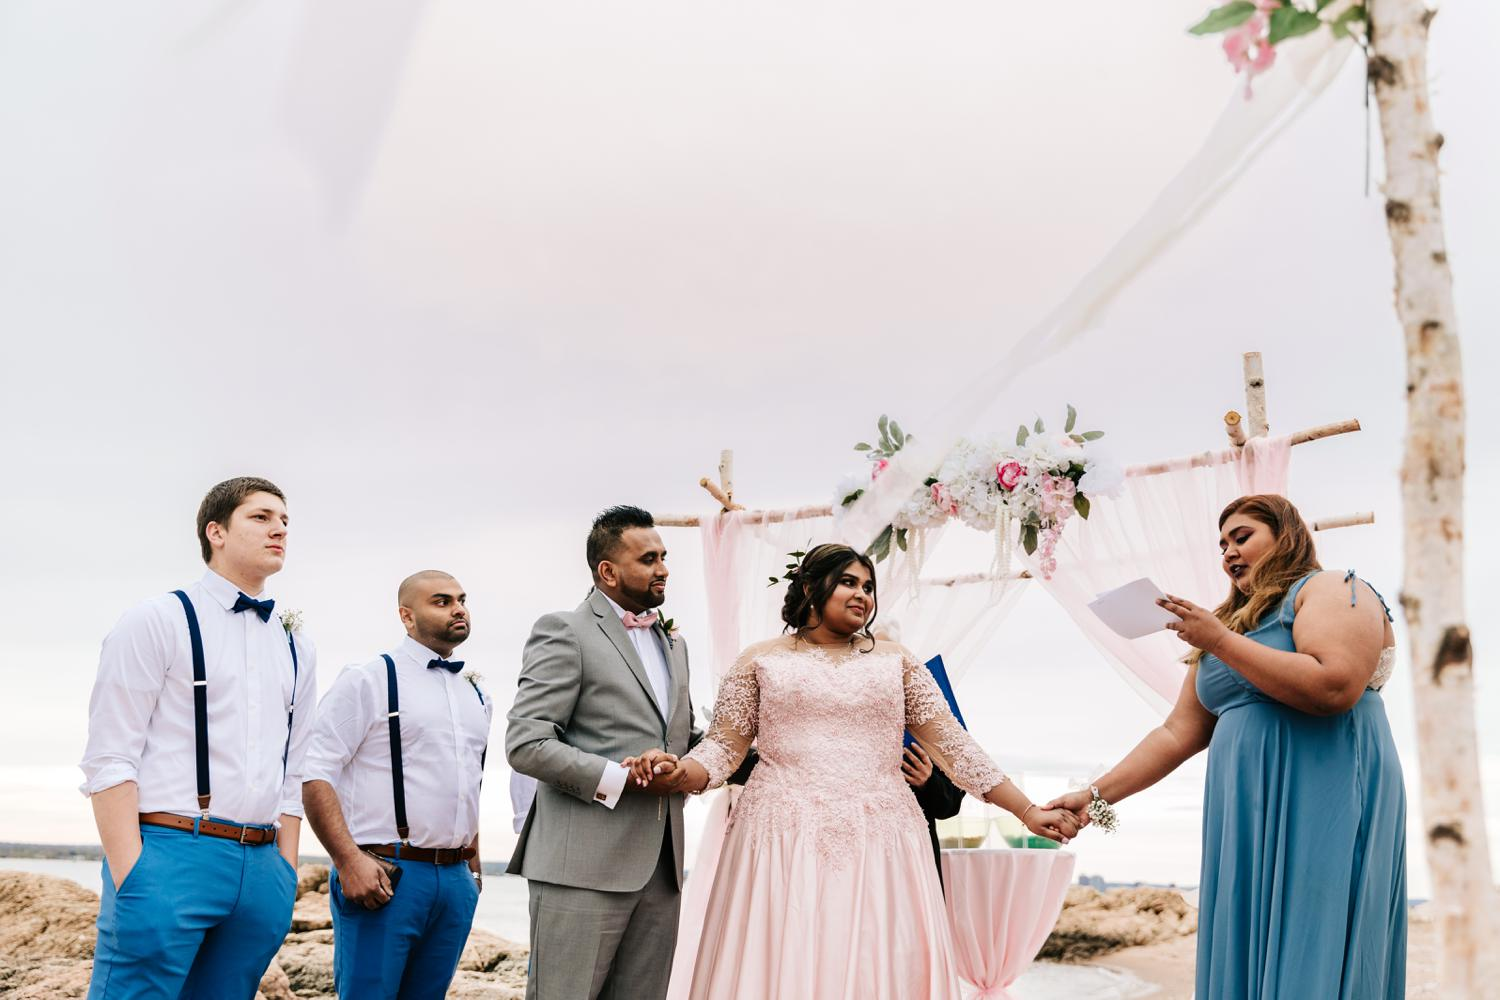 Bridesmaid holding hands with bride and groom while giving speech during beach wedding ceremony